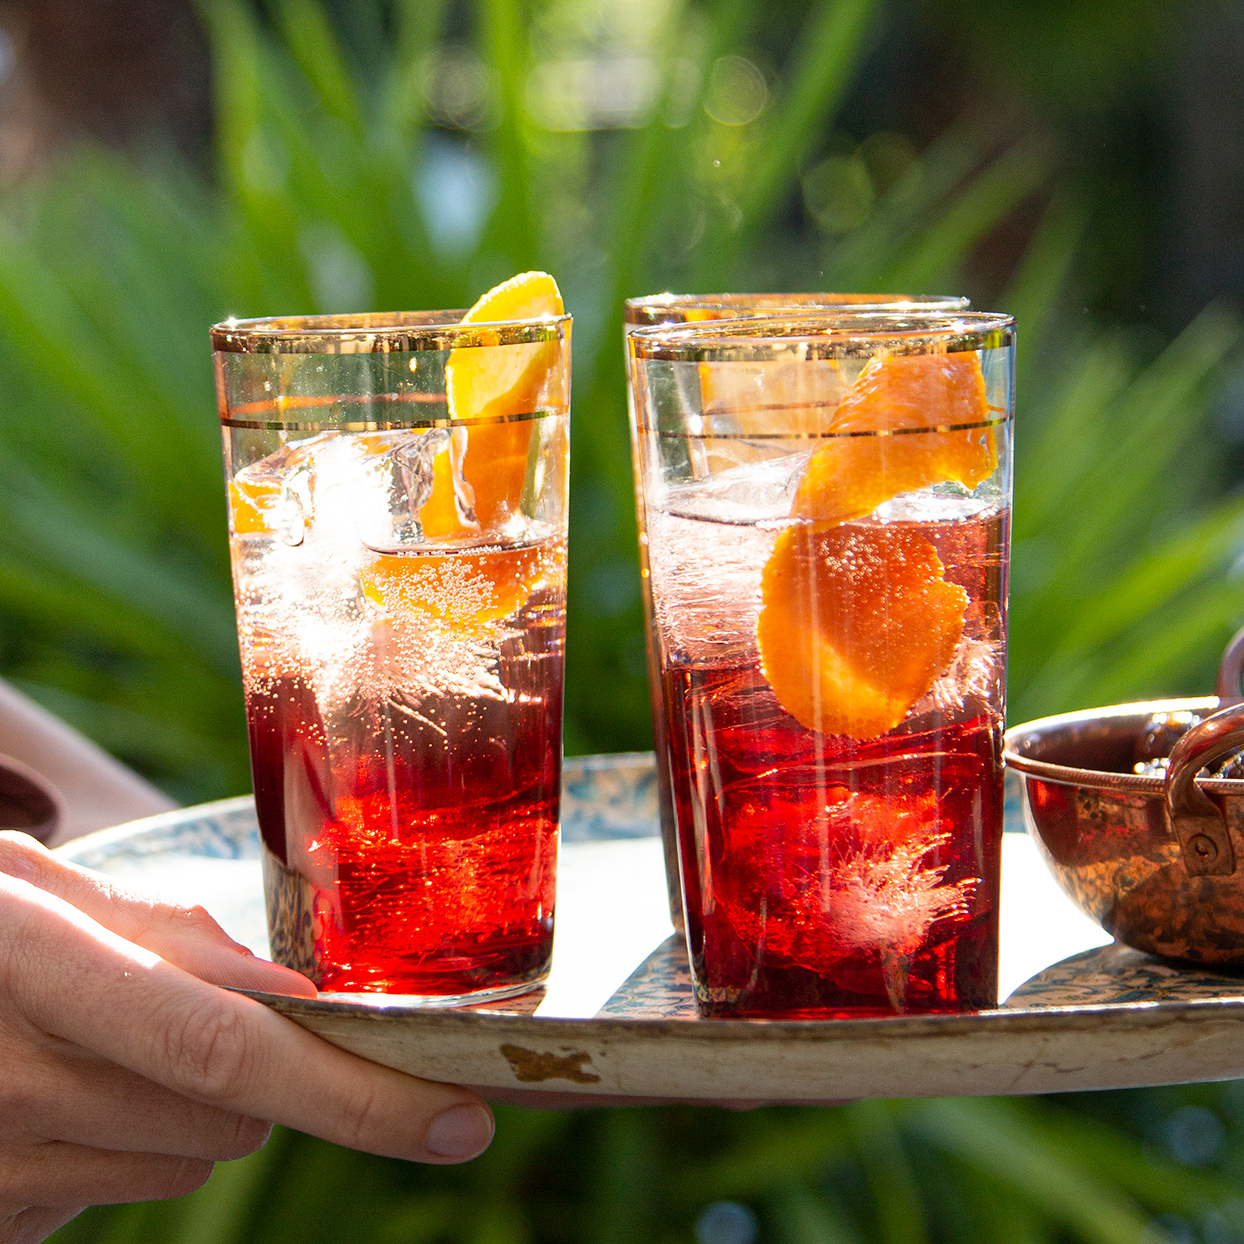 A spritz is a perfect apéro cocktail, refreshing and low-alcohol. It opens the palate instead of overwhelming it, making it an ideal pairing with whatever delicious snacks you are serving.